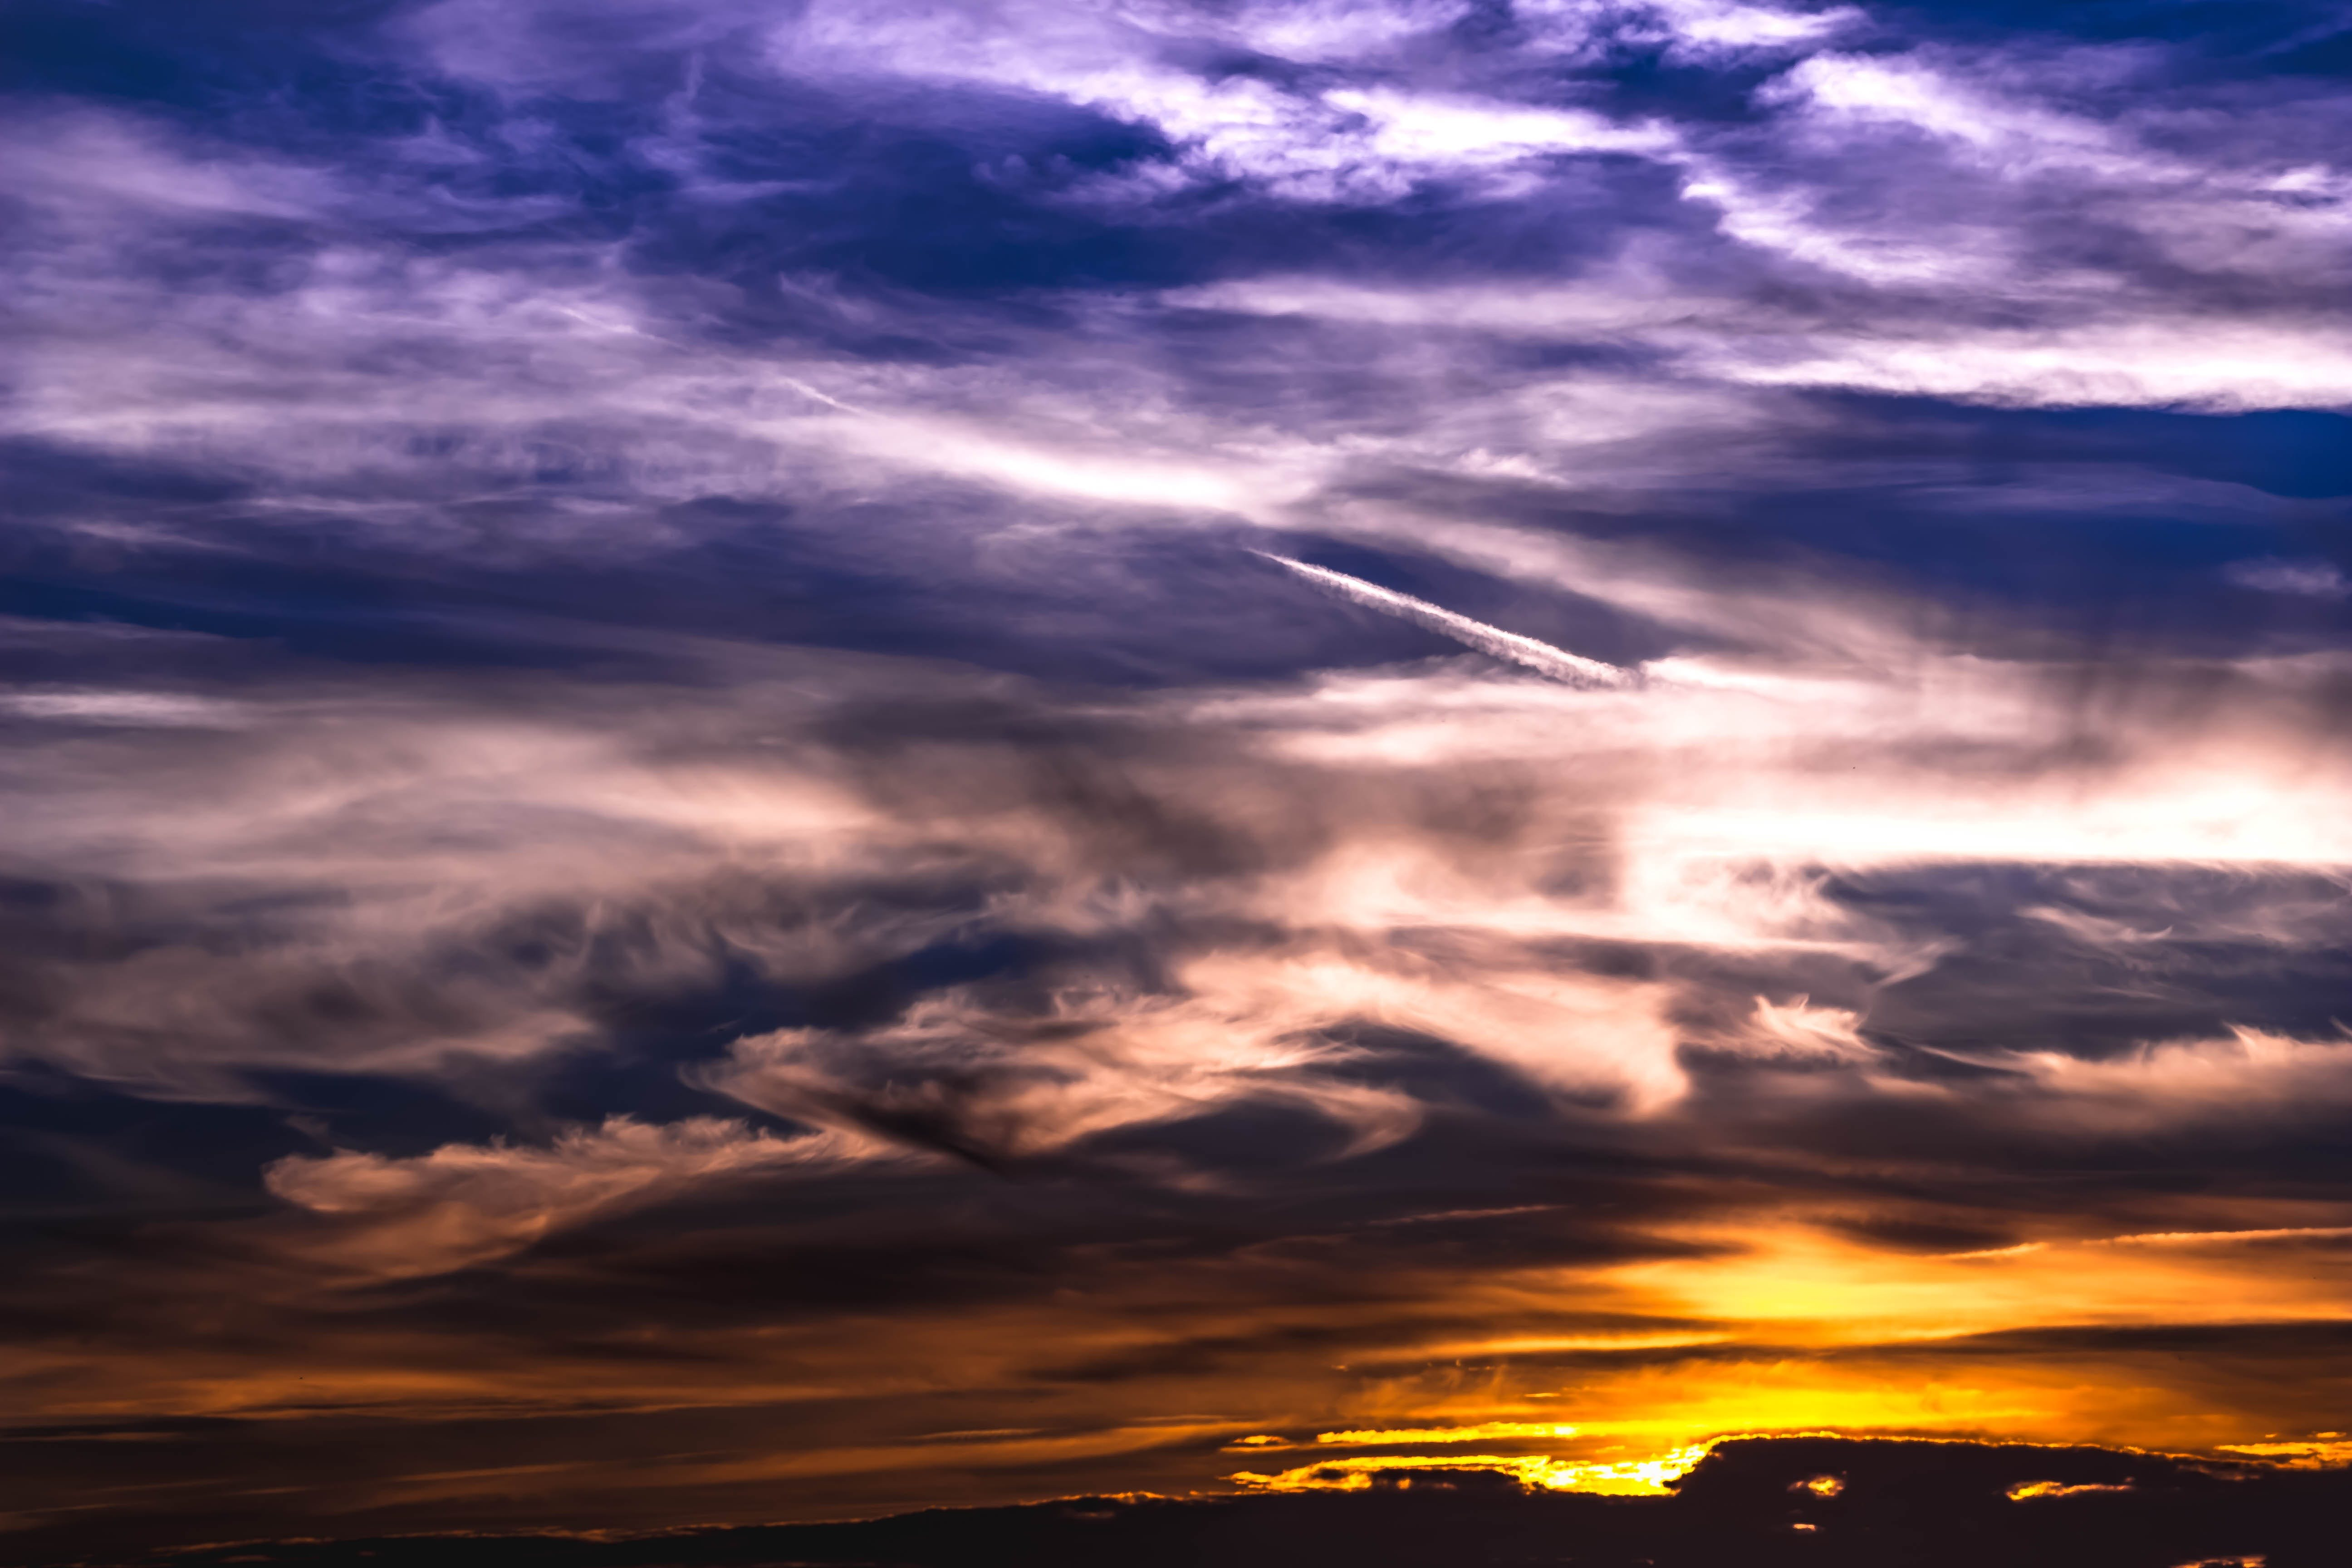 Free stock photo of sky, sunset, romantic, clouds